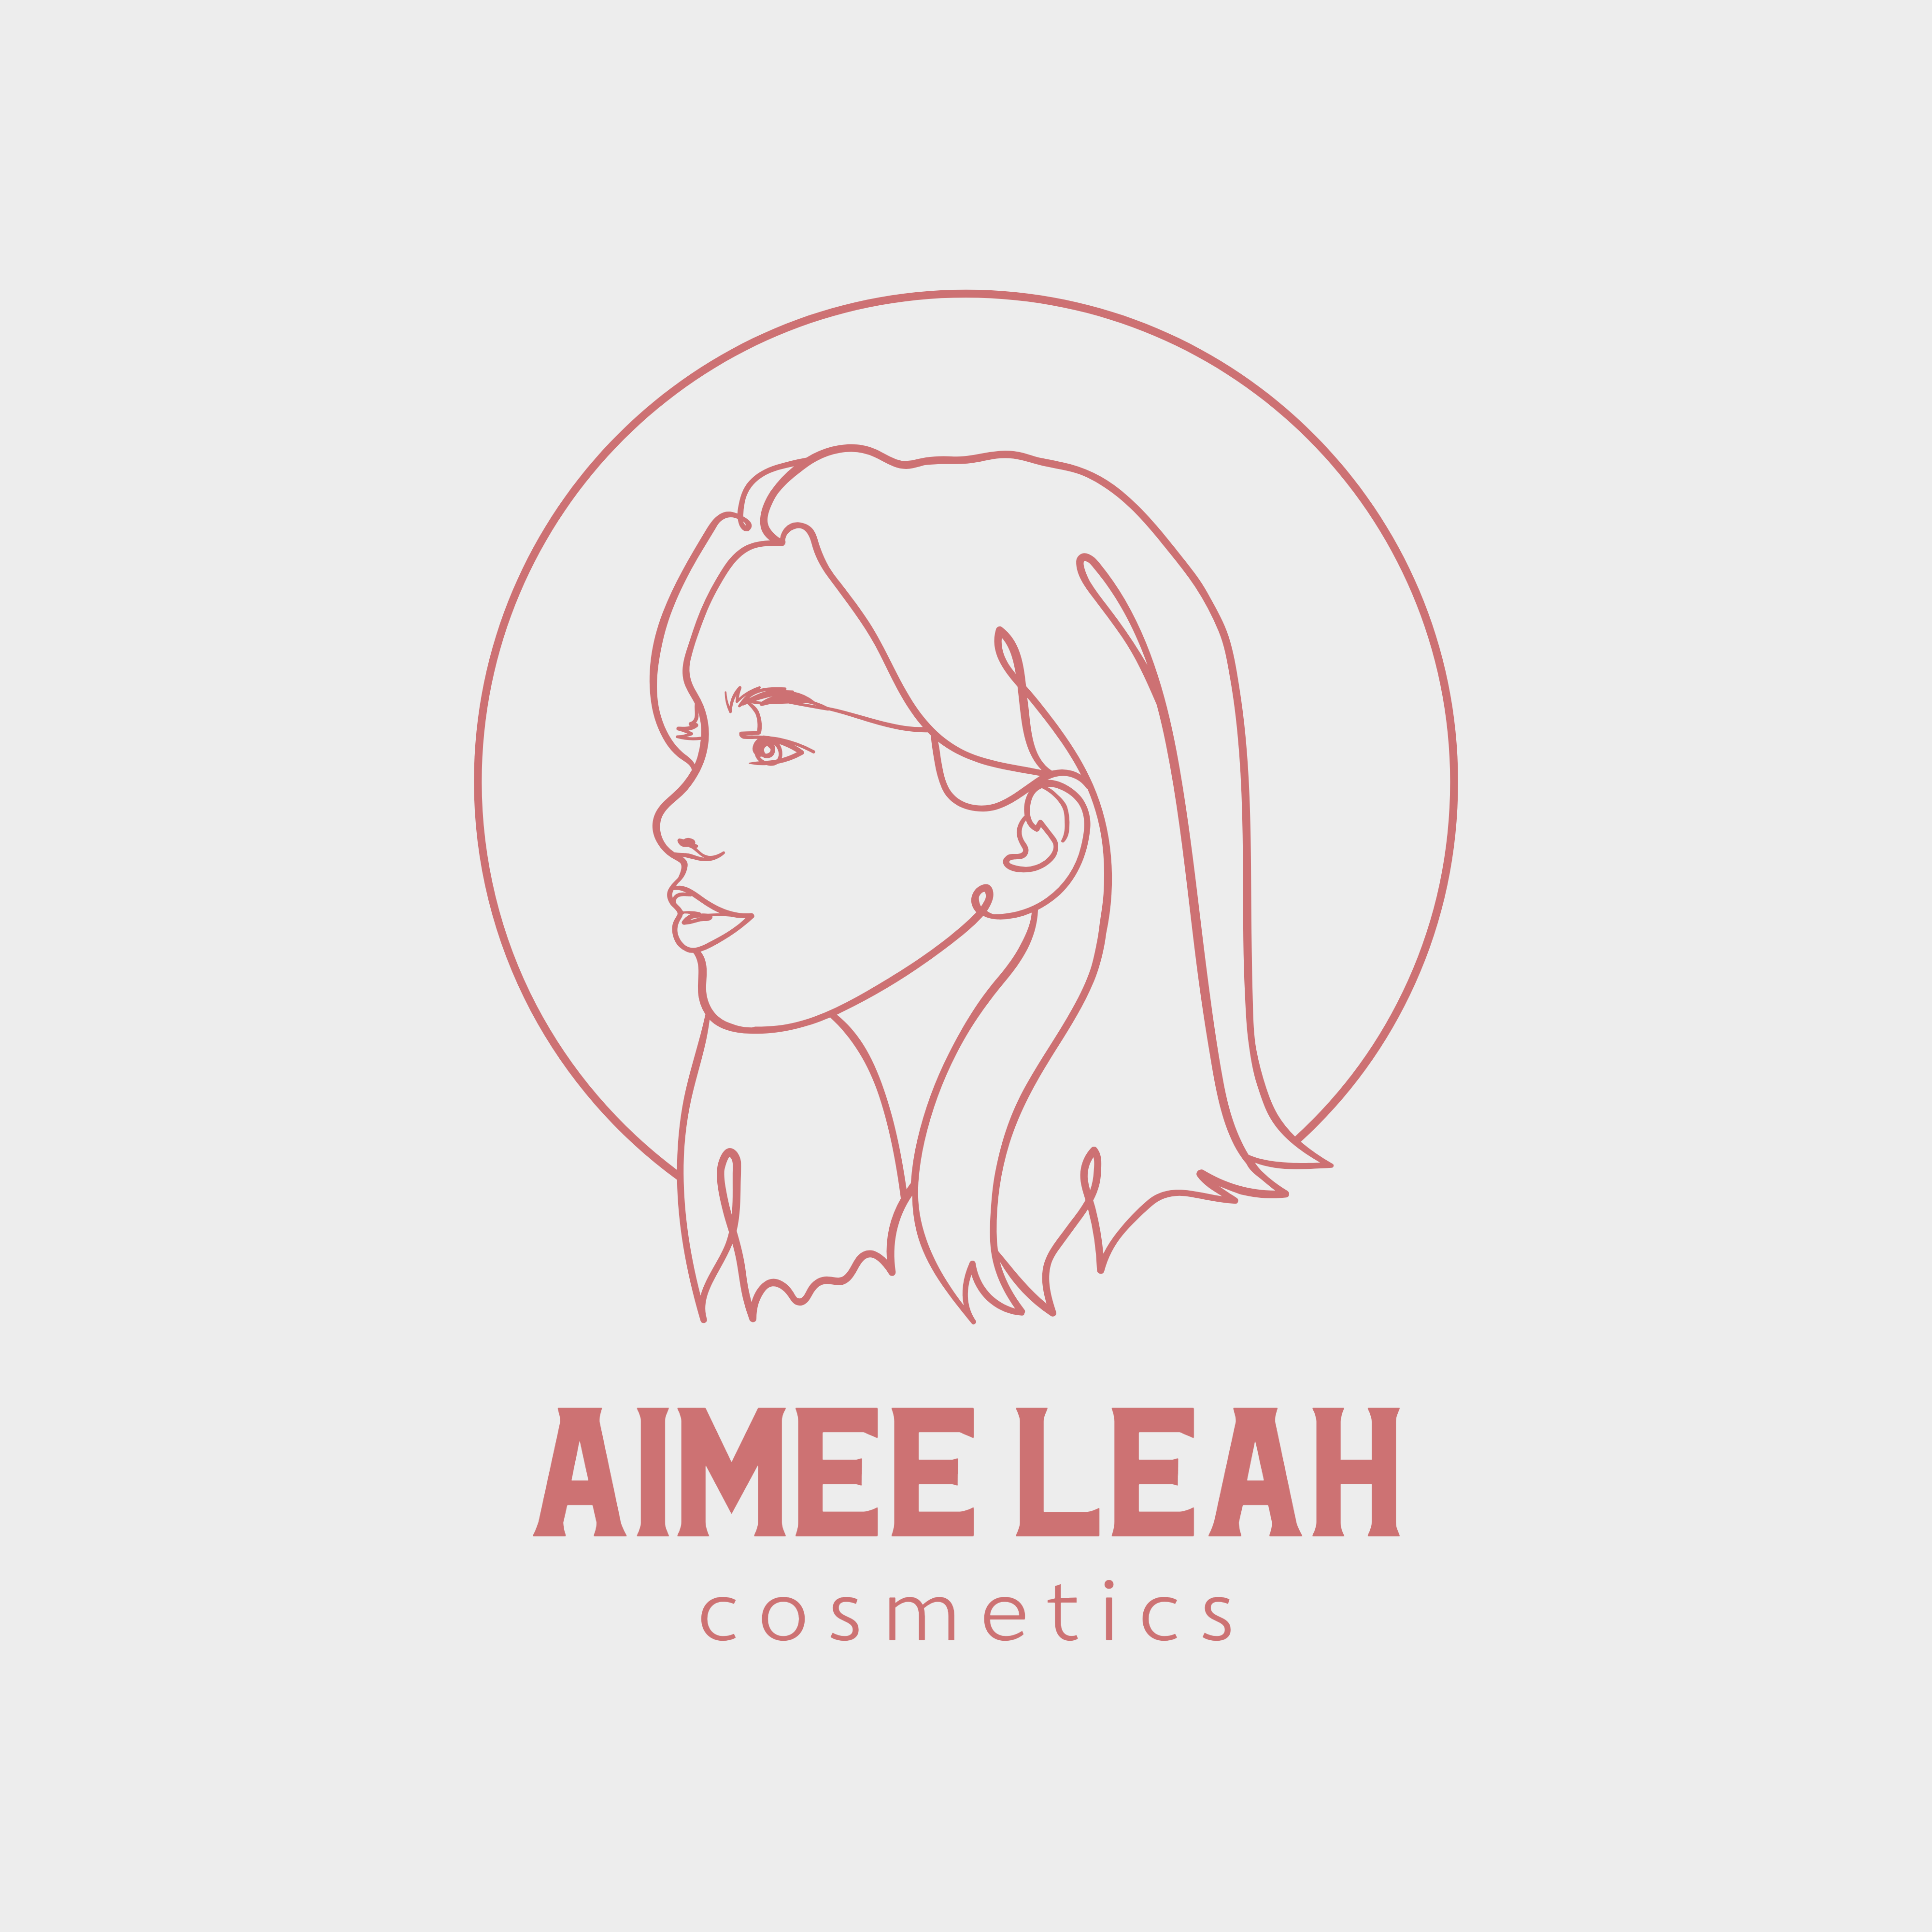 Aimee Leah Cosmetics logo design by Dalex Designs our work Our Work logo template for a cosmetic brand featuring line drawings 2960 1024x1024